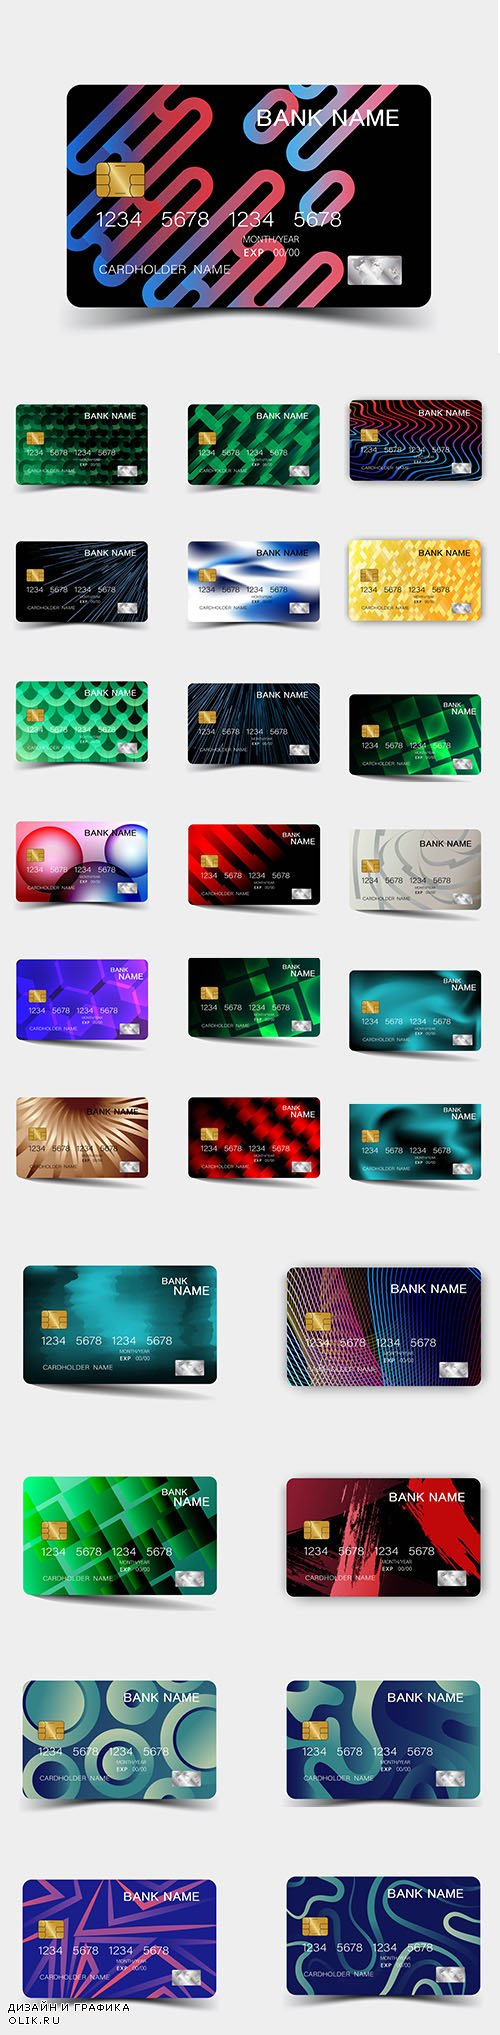 Credit Card Template Premium Vector Set